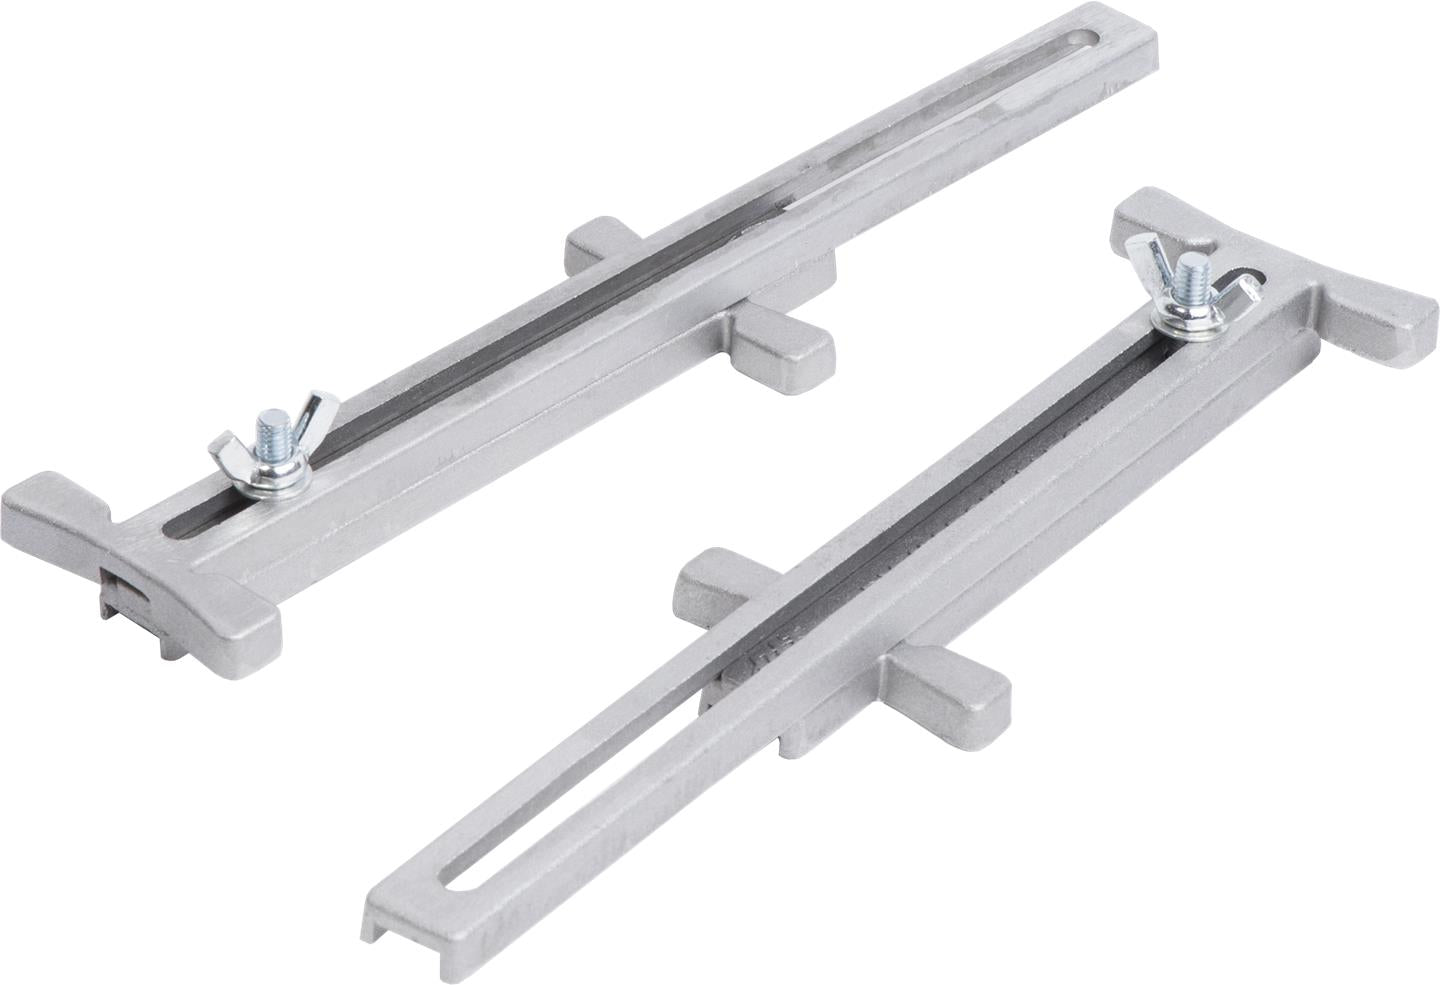 Aluminum Adjustable Line Stretchers-Marshalltown Tools-Atlas Preservation